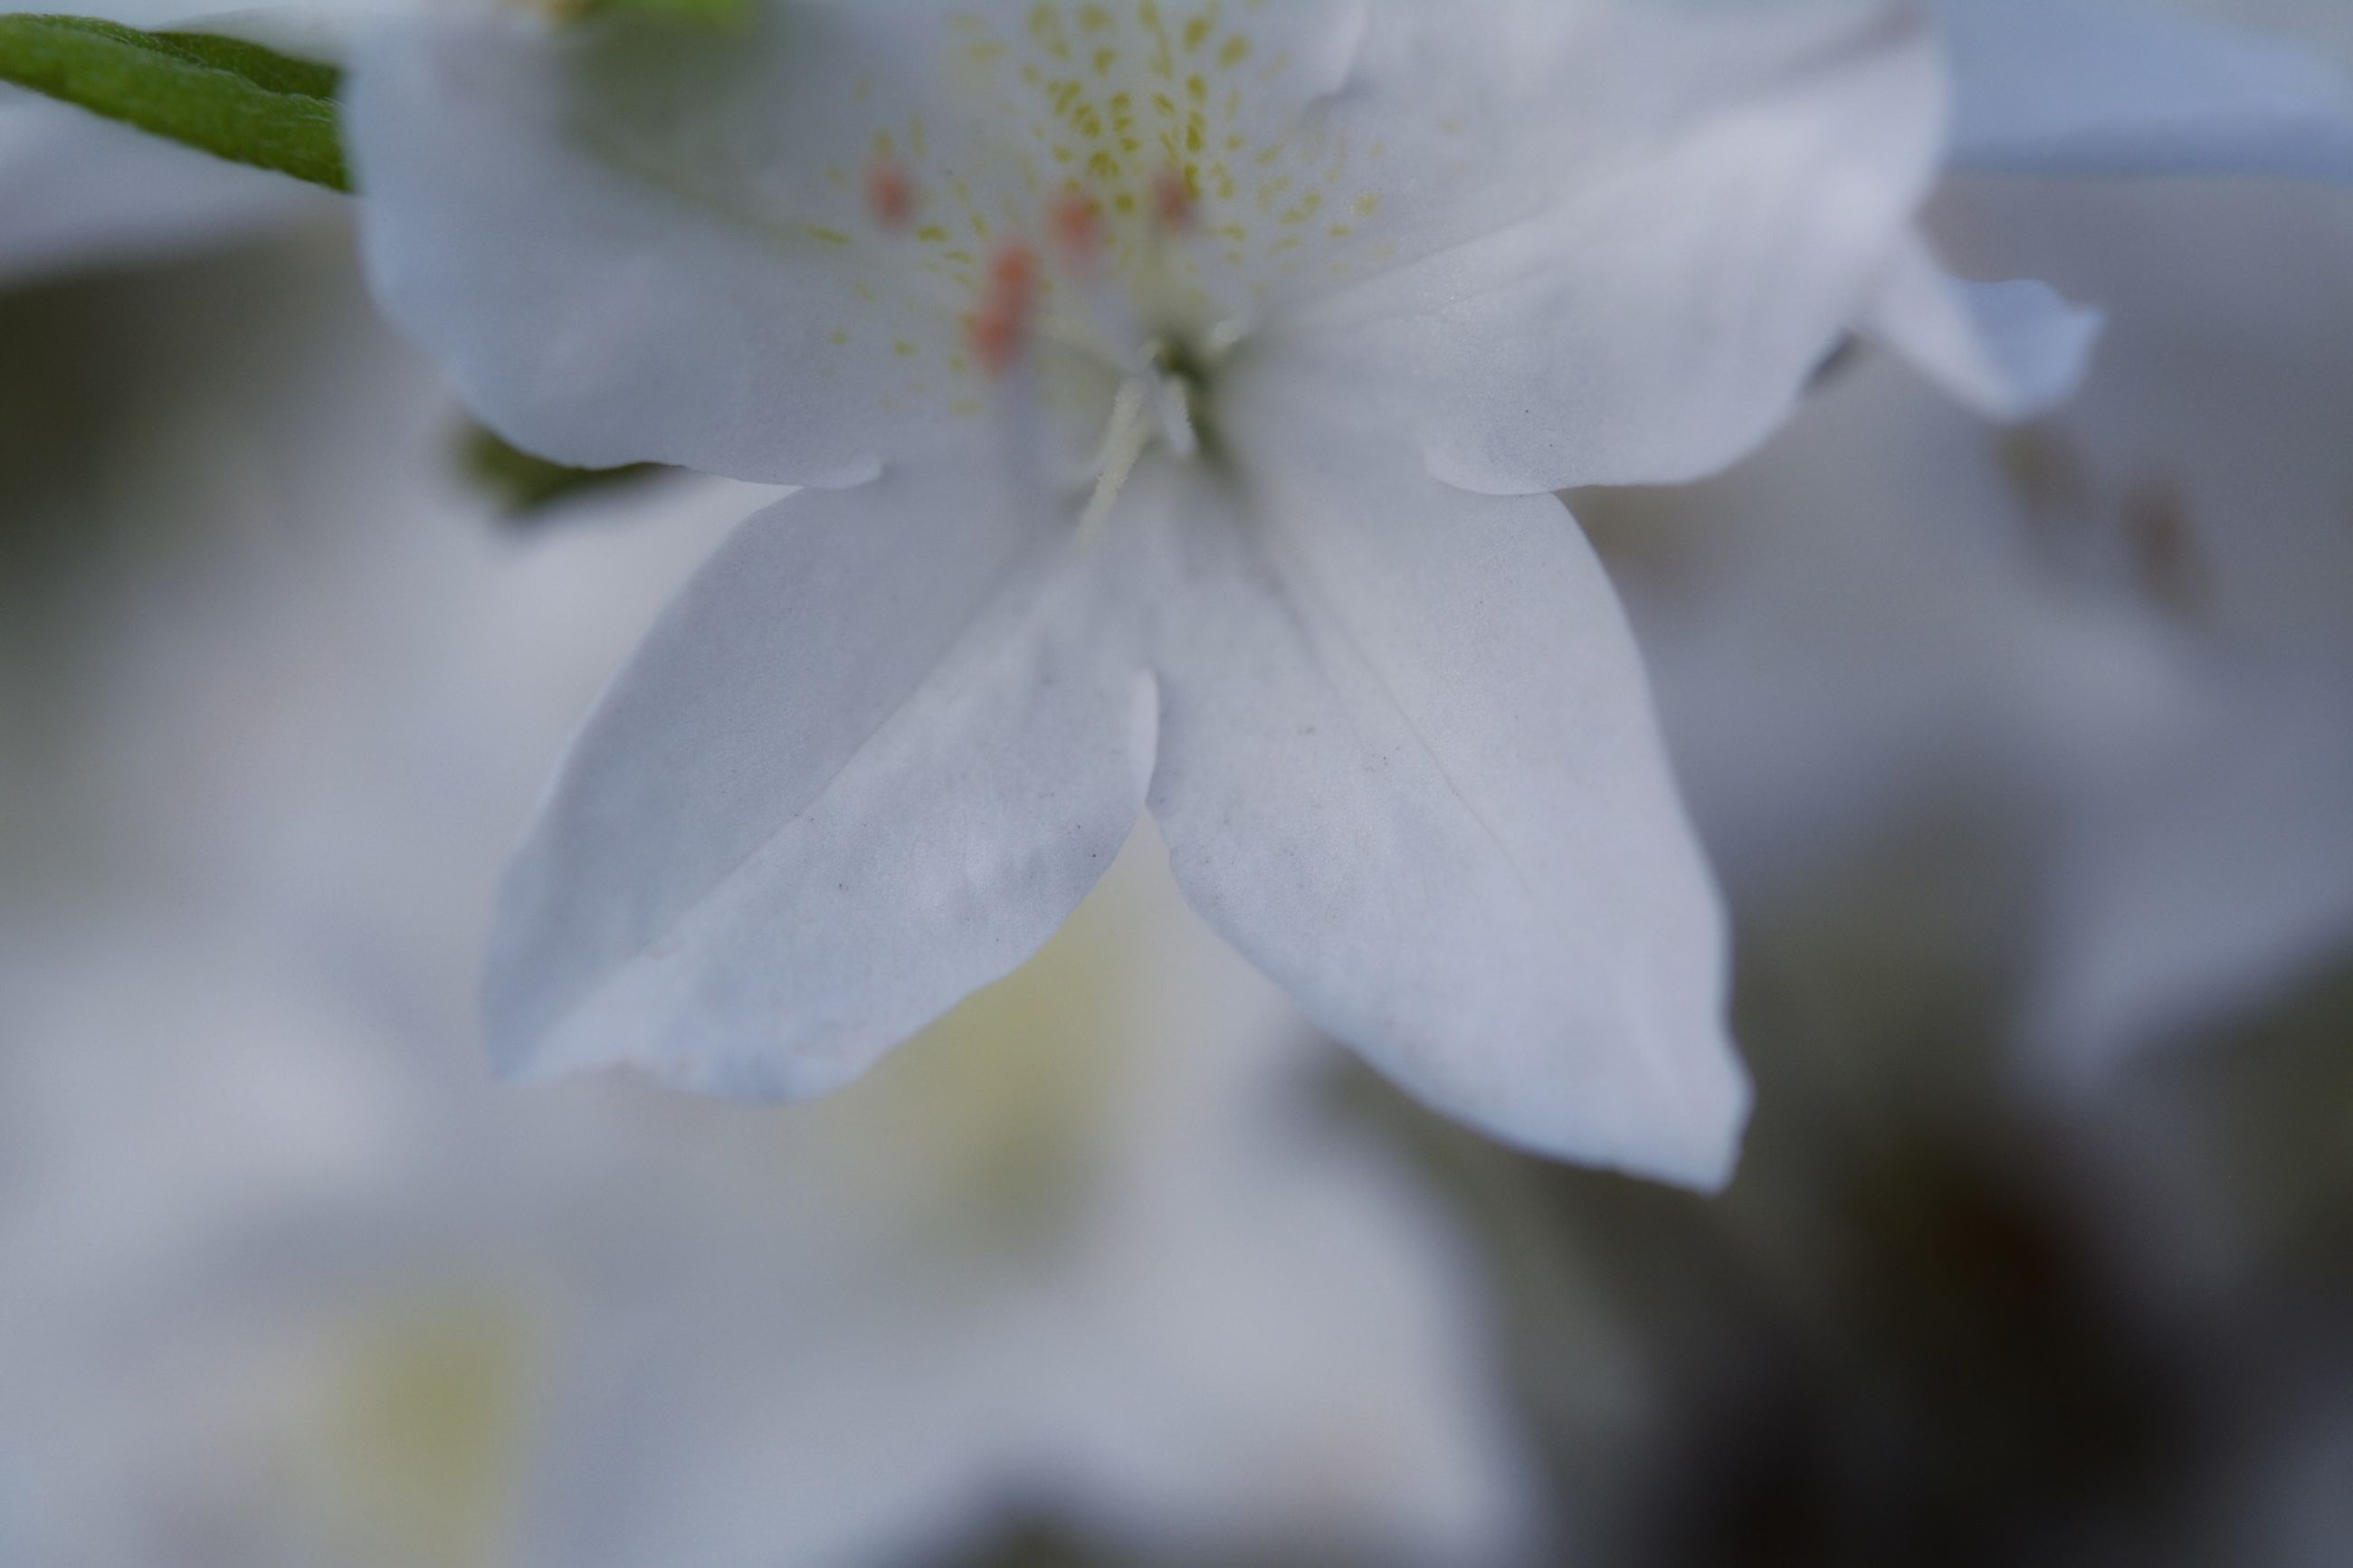 fragility, flower, petal, freshness, close-up, flower head, beauty in nature, growth, springtime, white color, blossom, season, focus on foreground, botany, nature, selective focus, in bloom, macro, stamen, softness, cherry blossom, single flower, pollen, pistil, extreme close-up, day, exotic, apple blossom, bloom, pink color